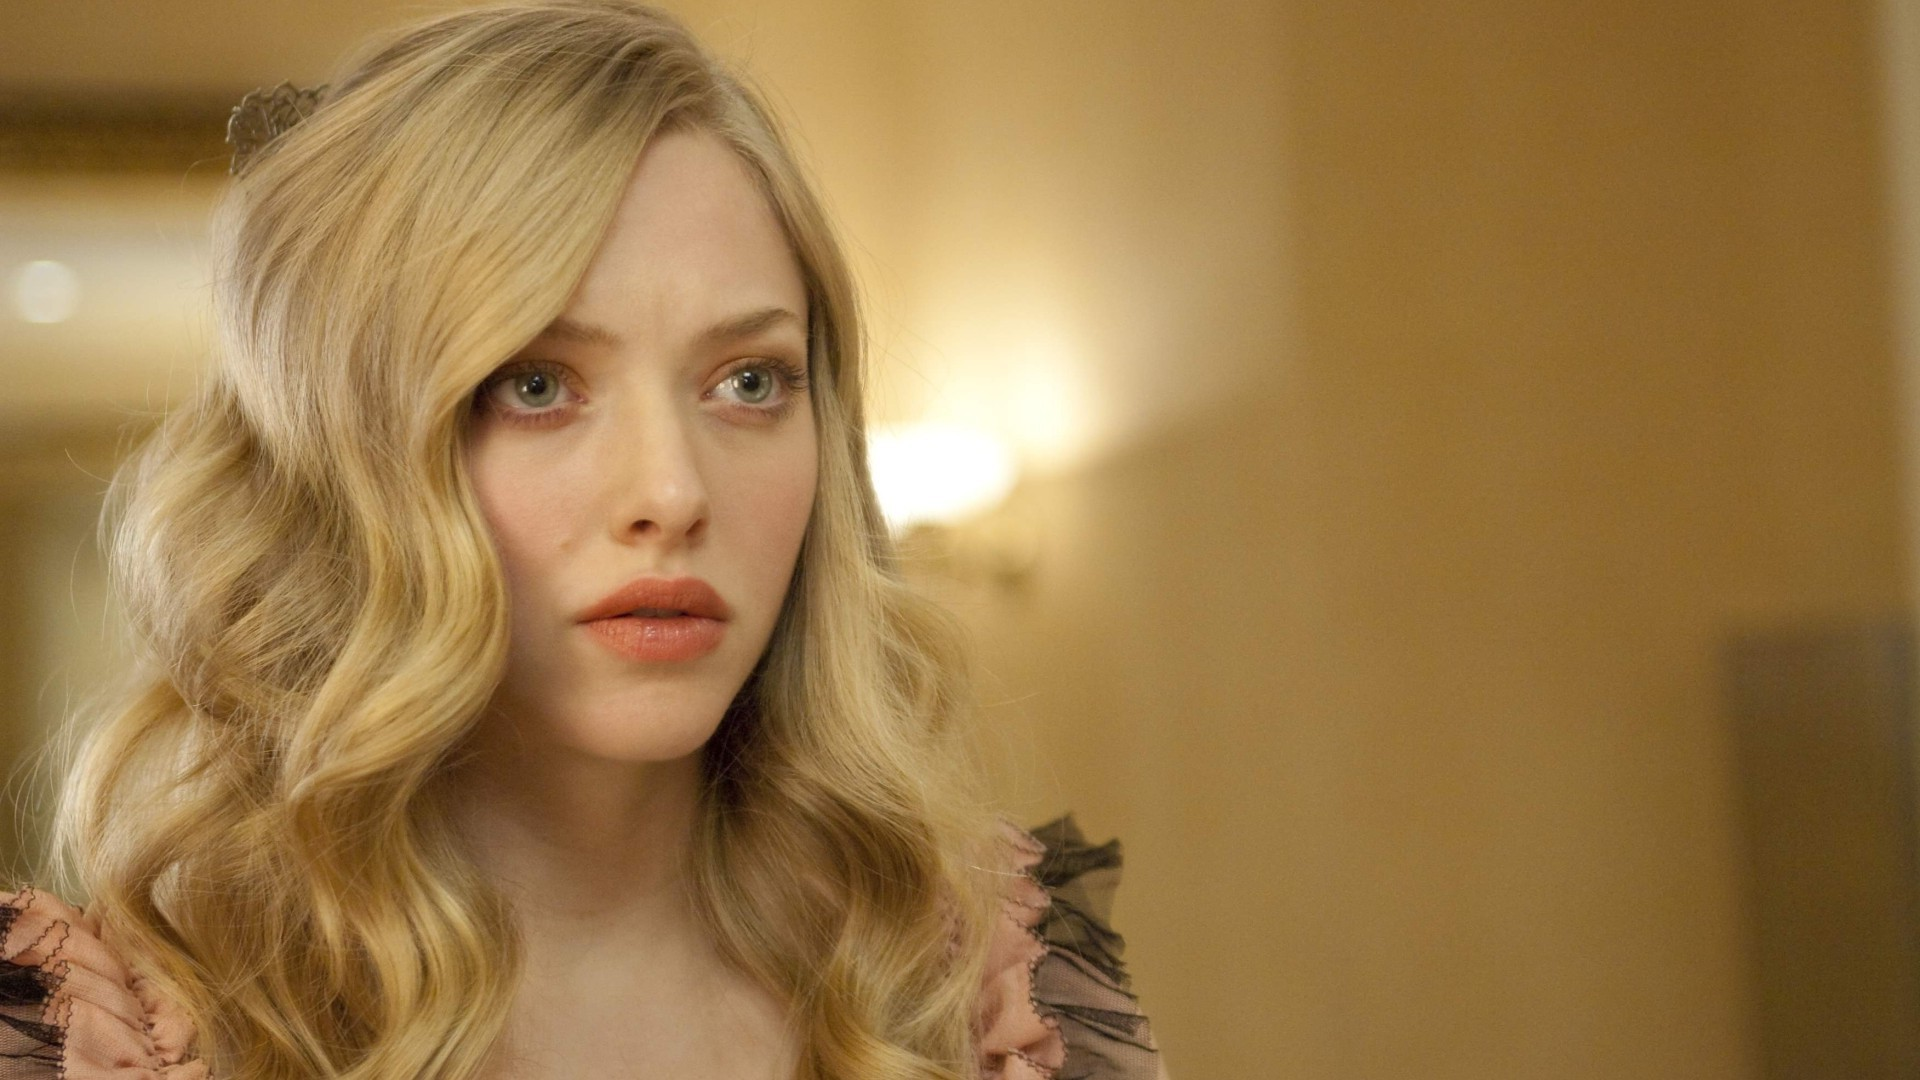 amanda seyfried beautiful face mobile free desktop background hd images